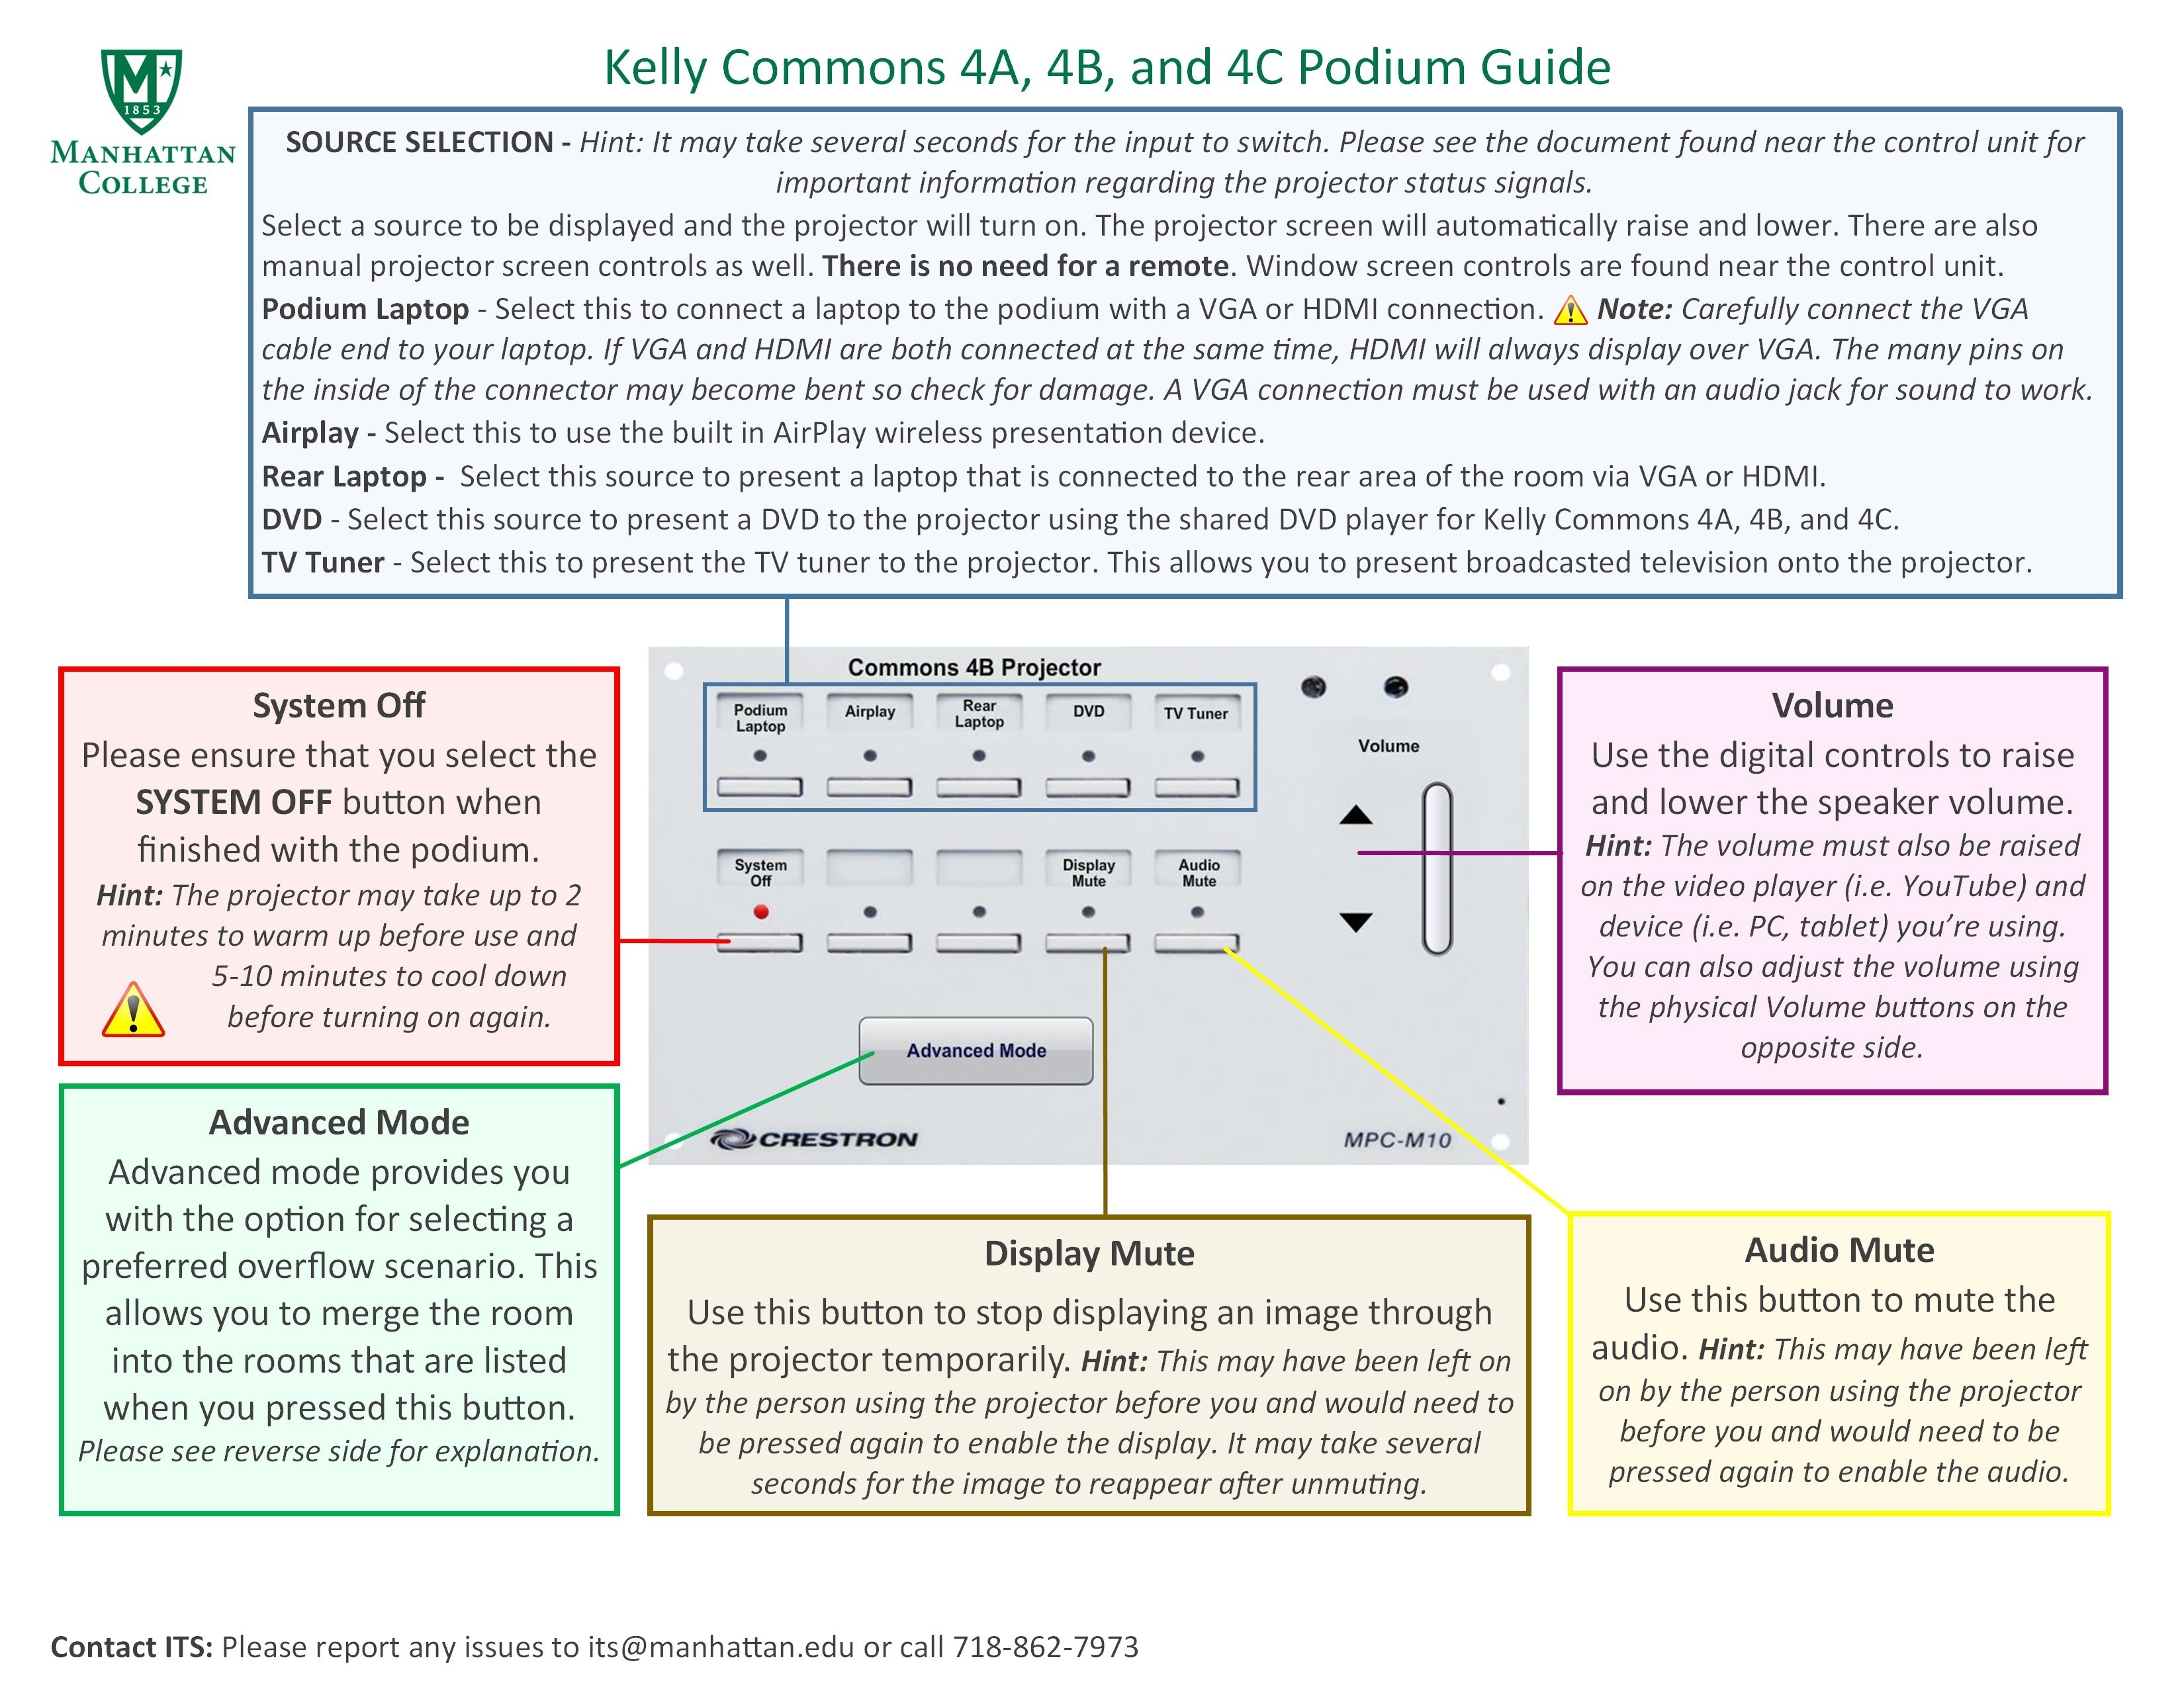 image depicting the Kelly commons 4th floor podium guide with the control unit shown